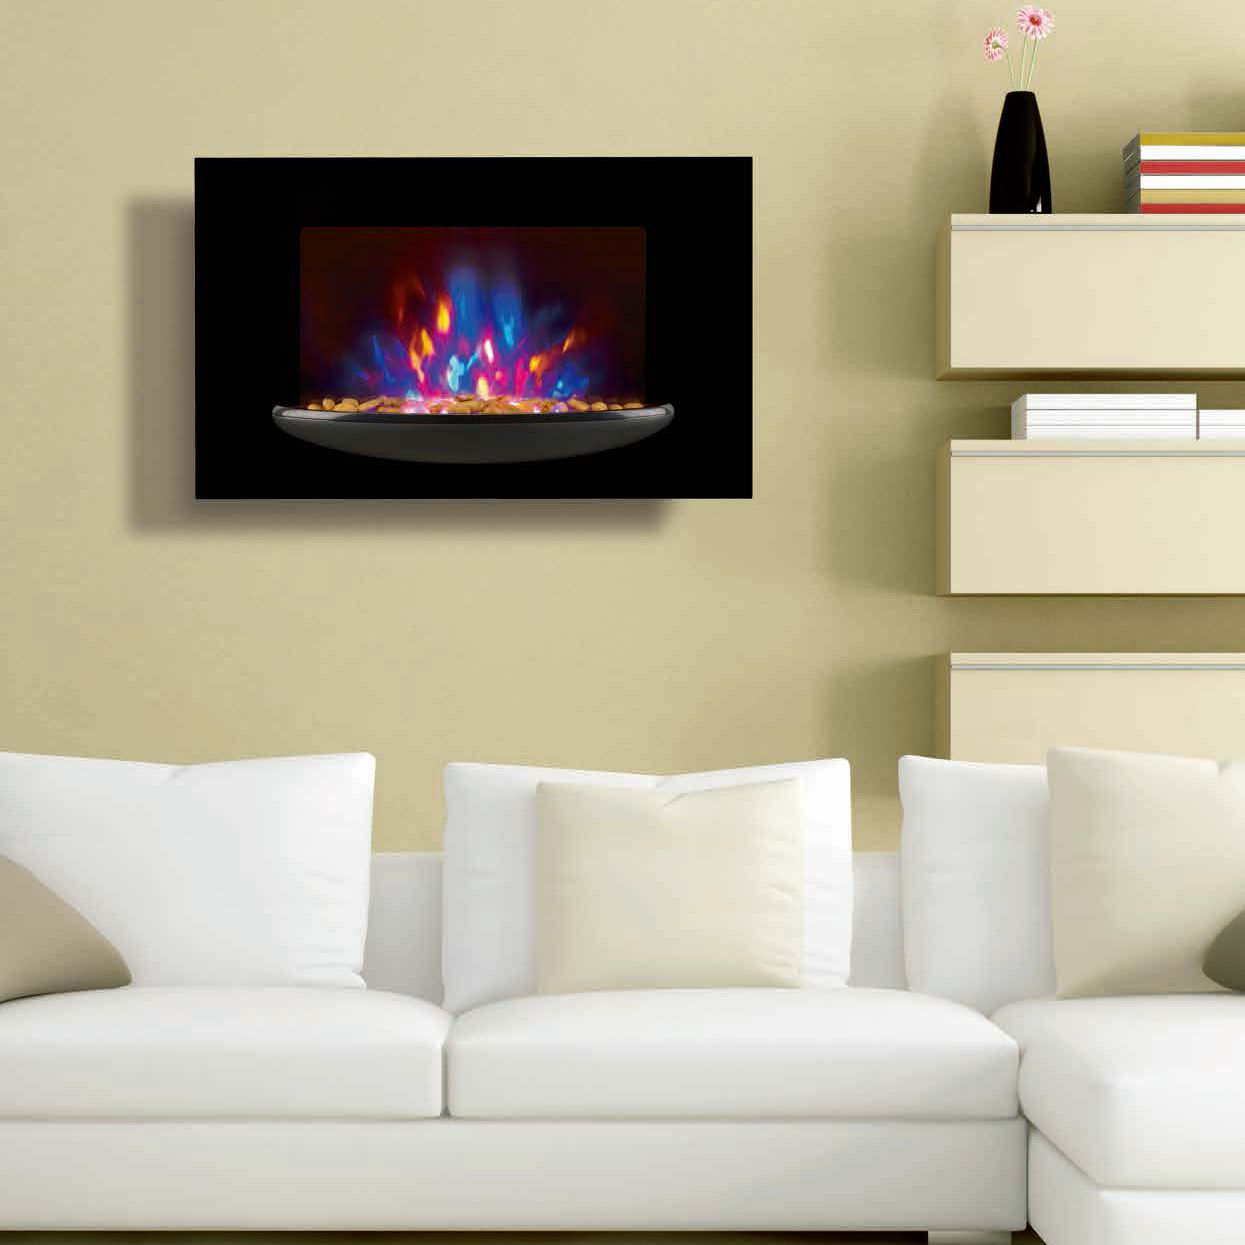 wall mounted fireplace wall hang real flame effect,colorful style,LED lights,Red,Orange,Blue,EF520P/